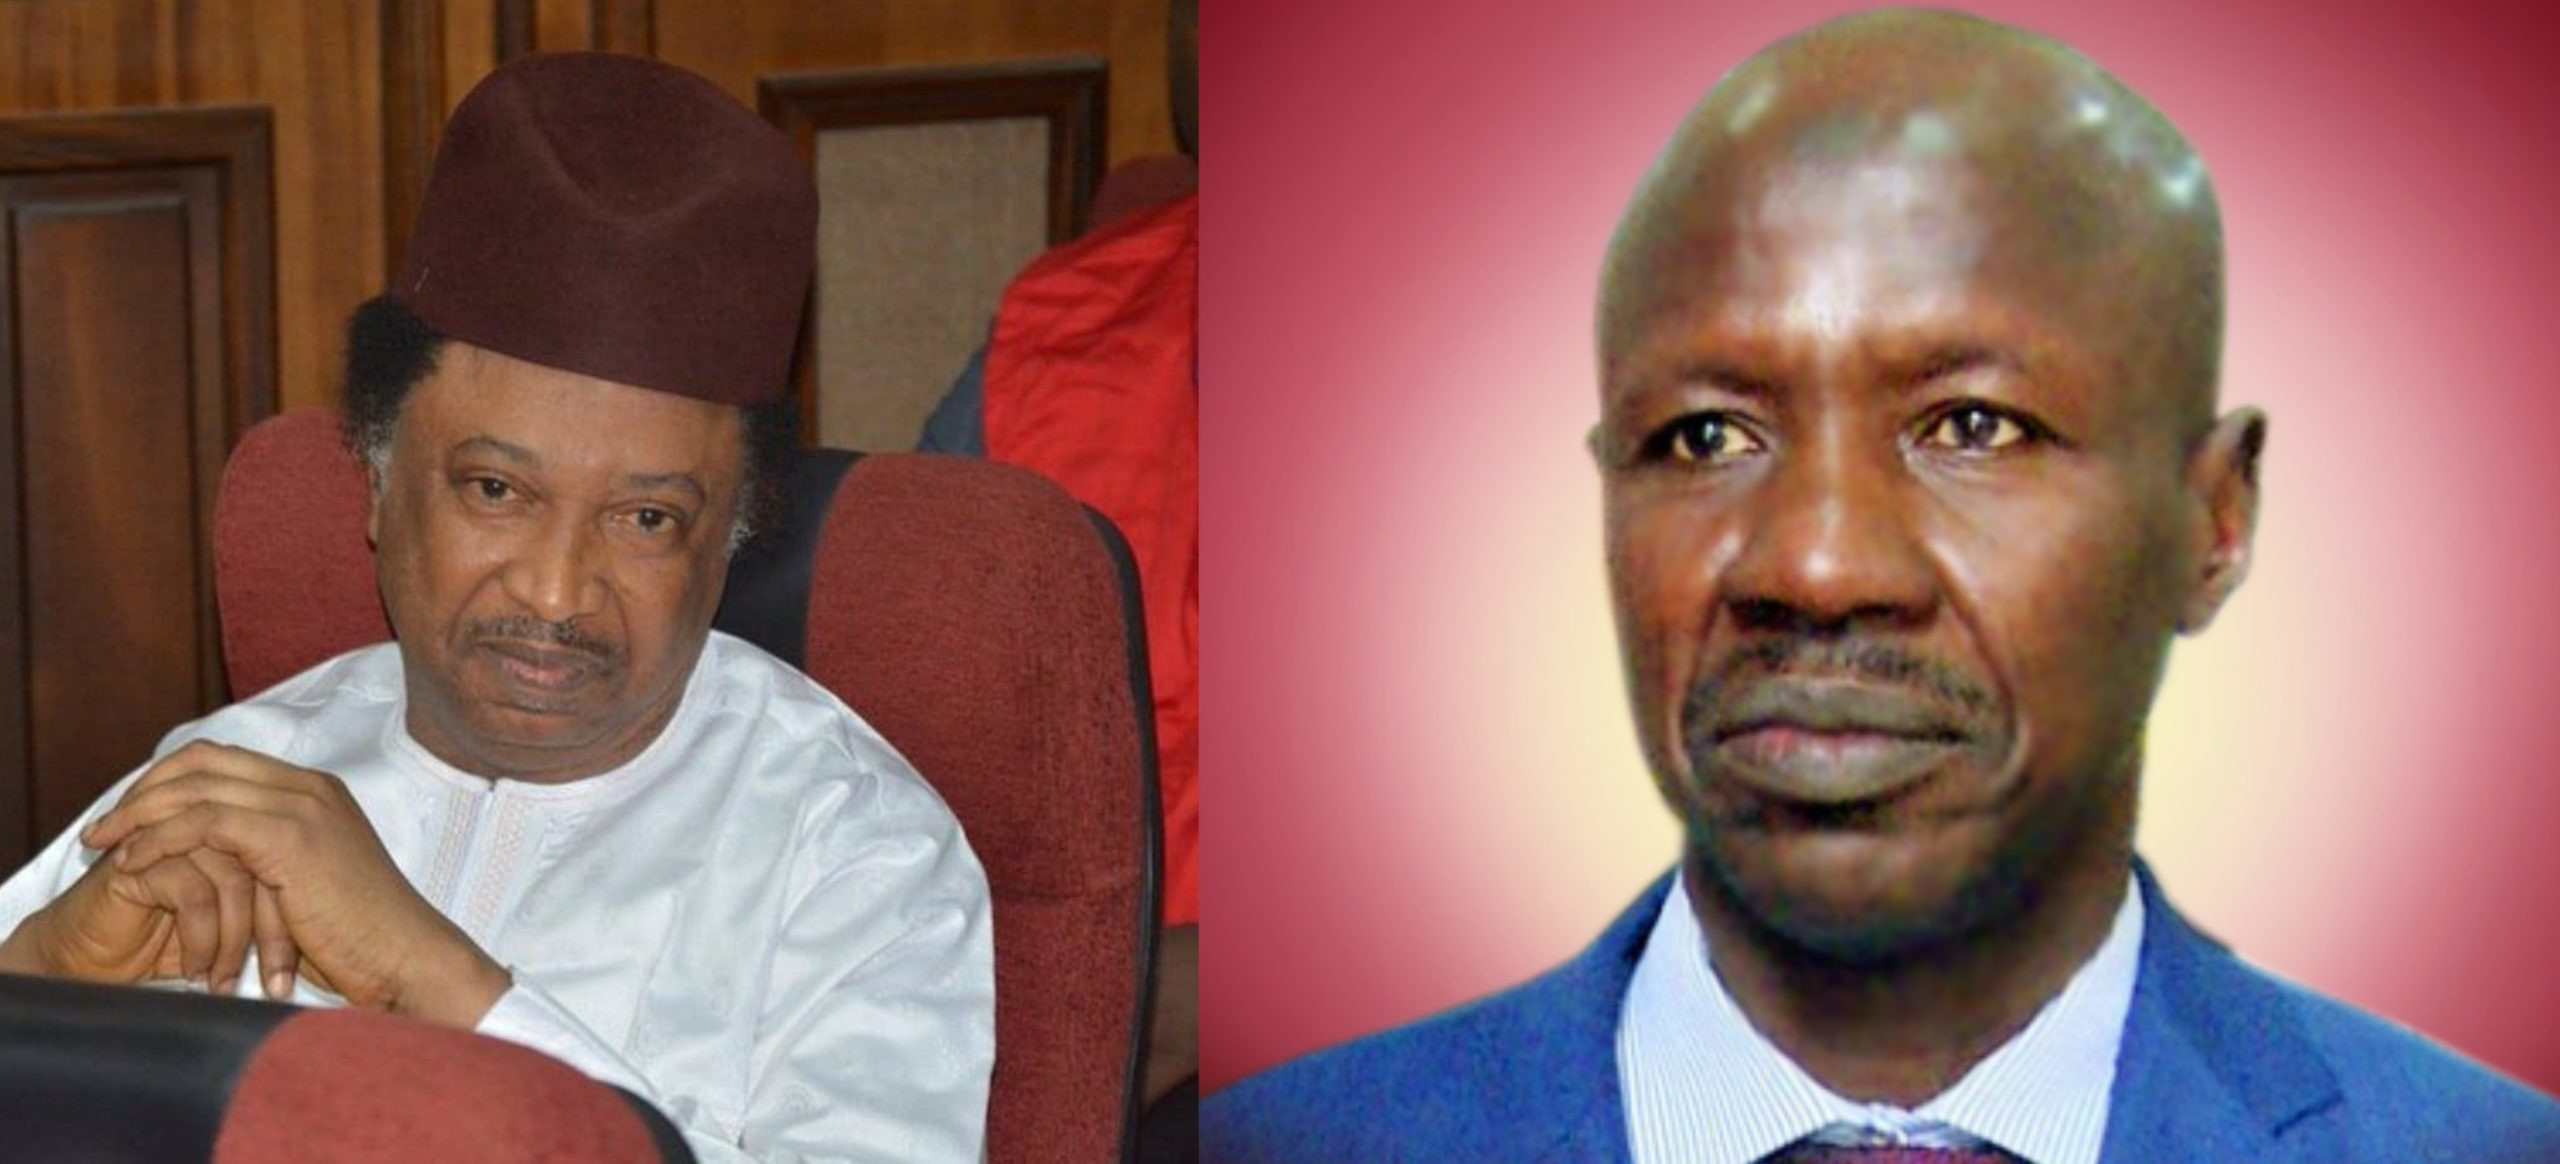 EFCC is being ran by an inside cult called 'the Magu Boys' or 'the Chairman Squad' - Shehu Sani lindaikejisblog